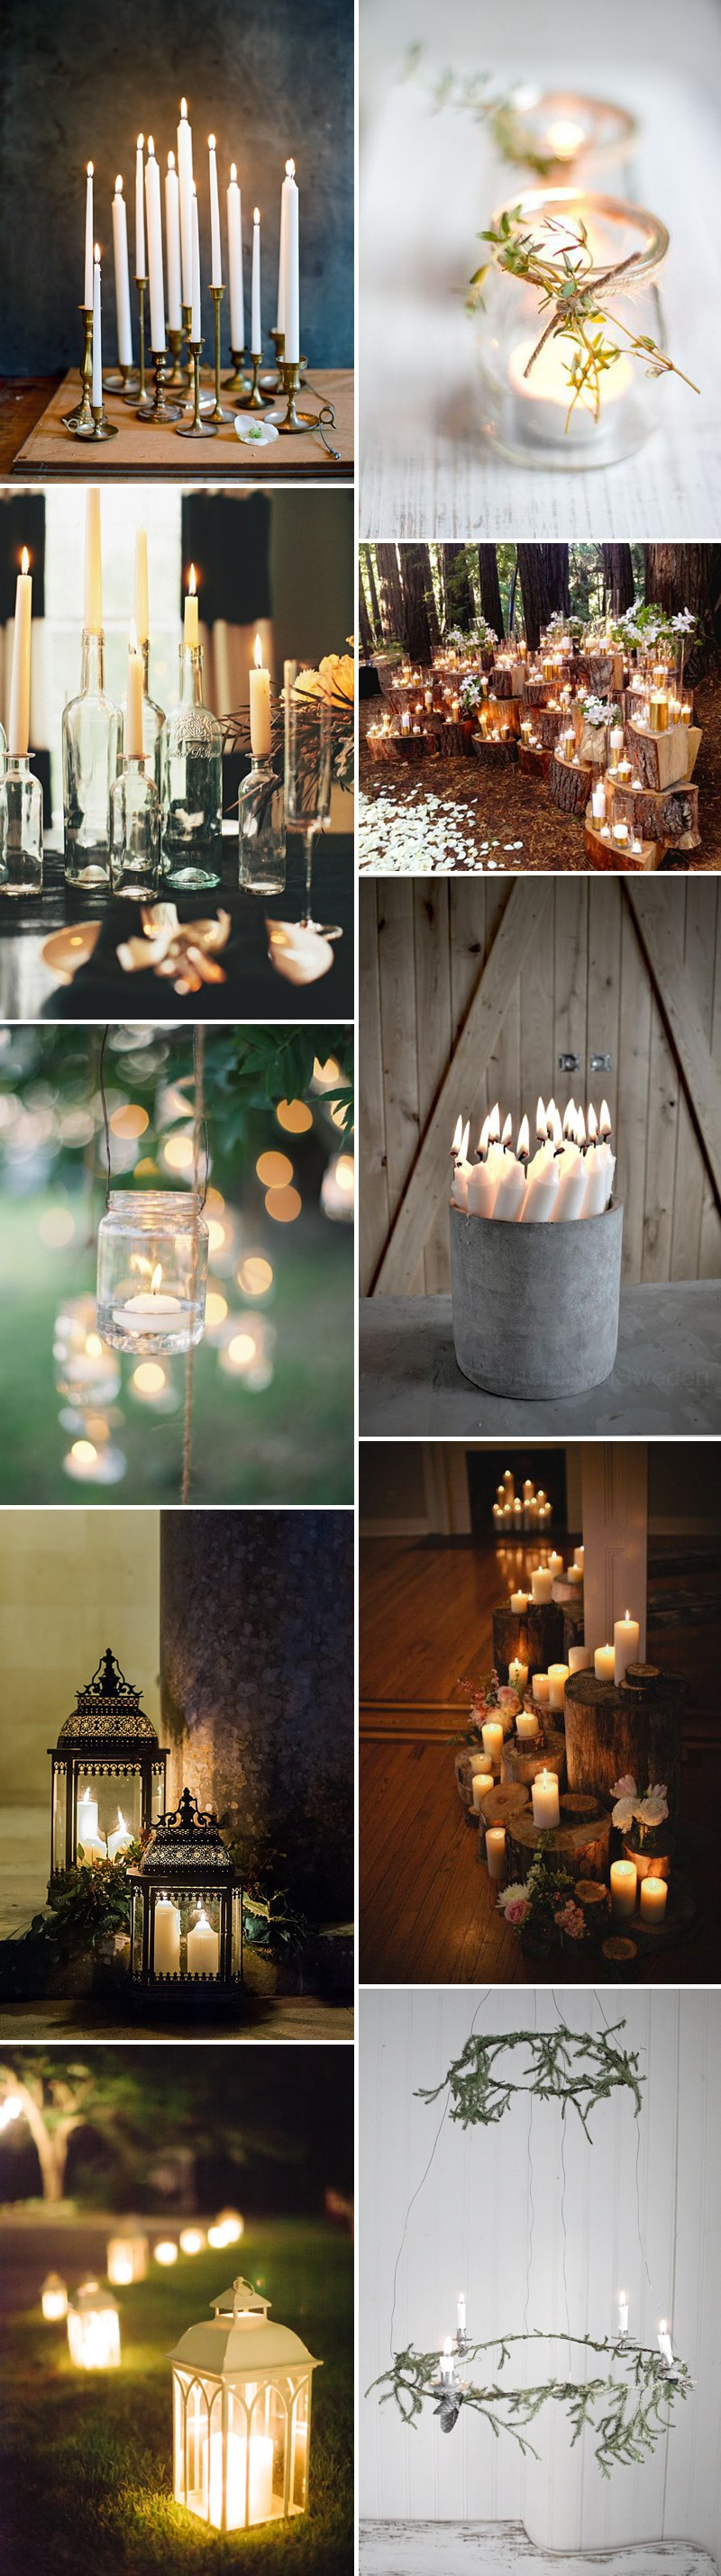 Wedding Lighting Design Inspiration And Ideas For Your Big Day Including Festoon Lighting and Candles._0001